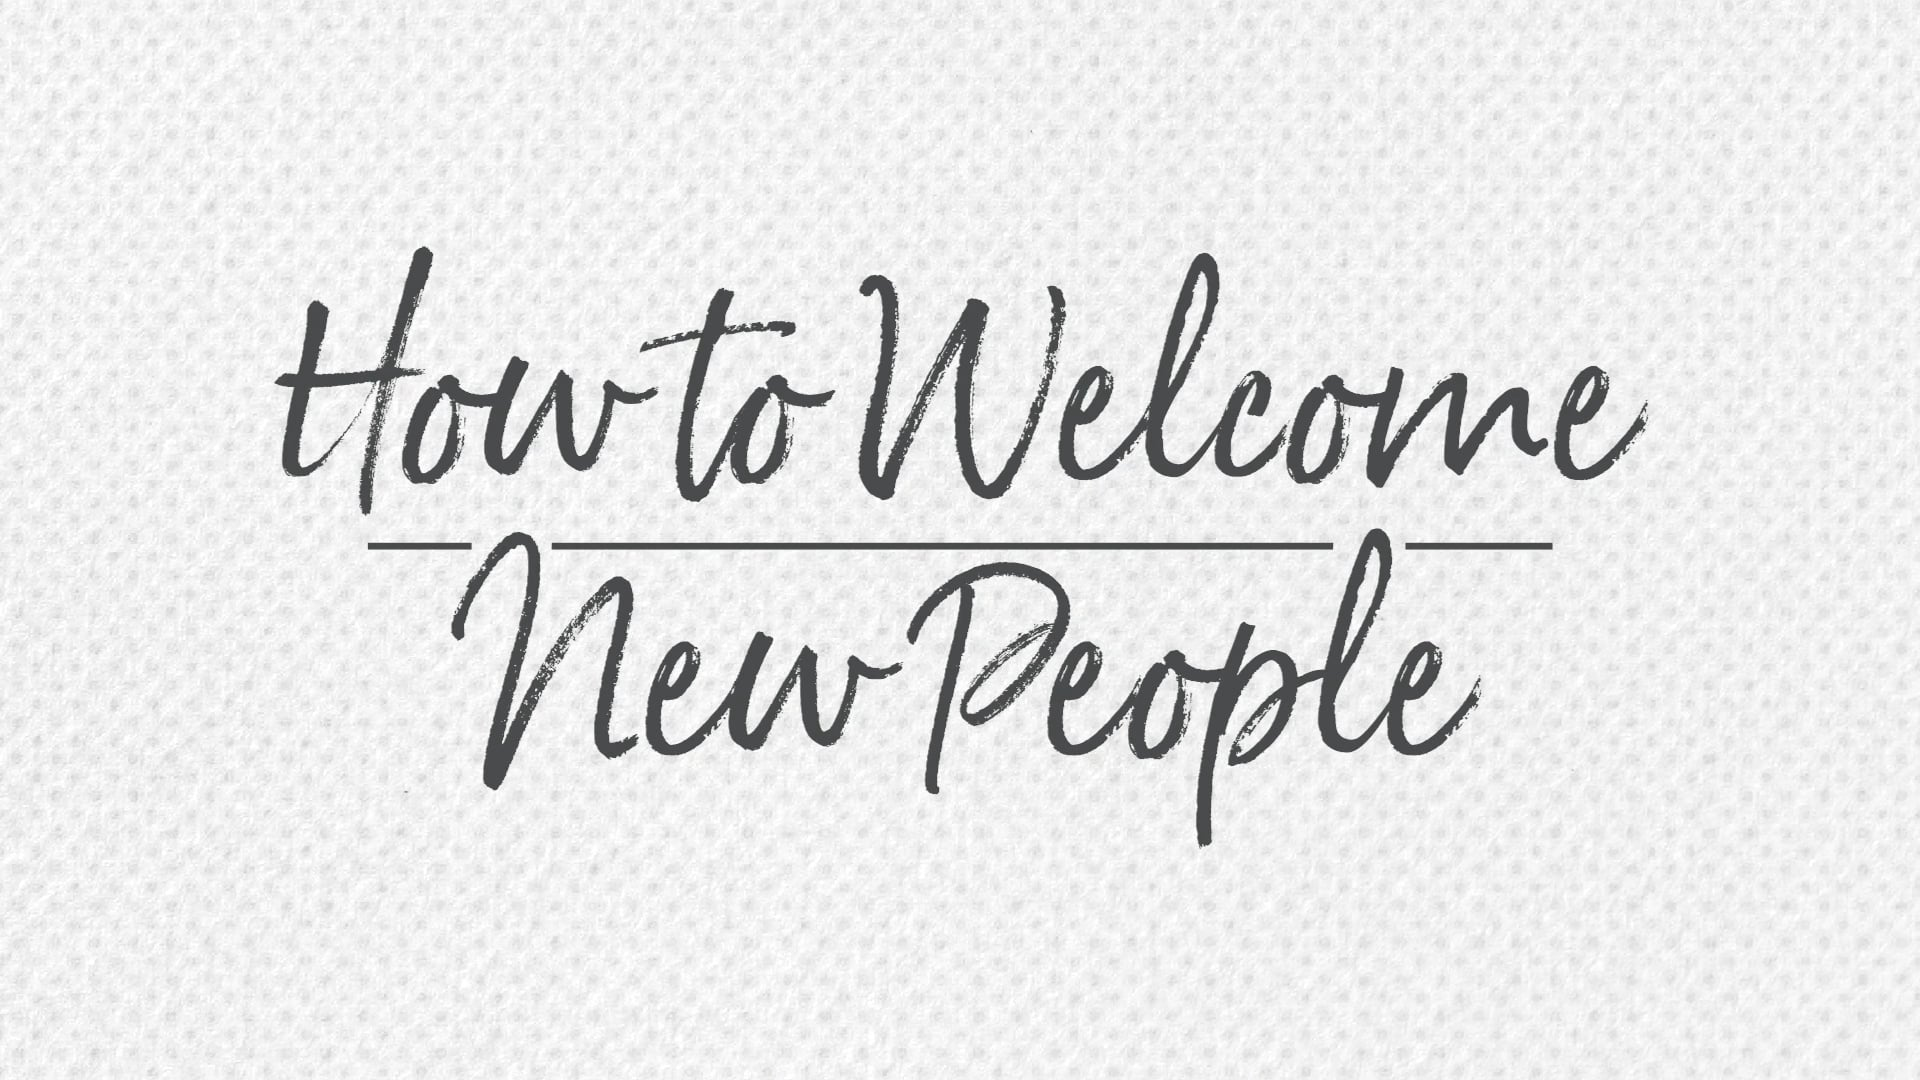 How to Welcome New People